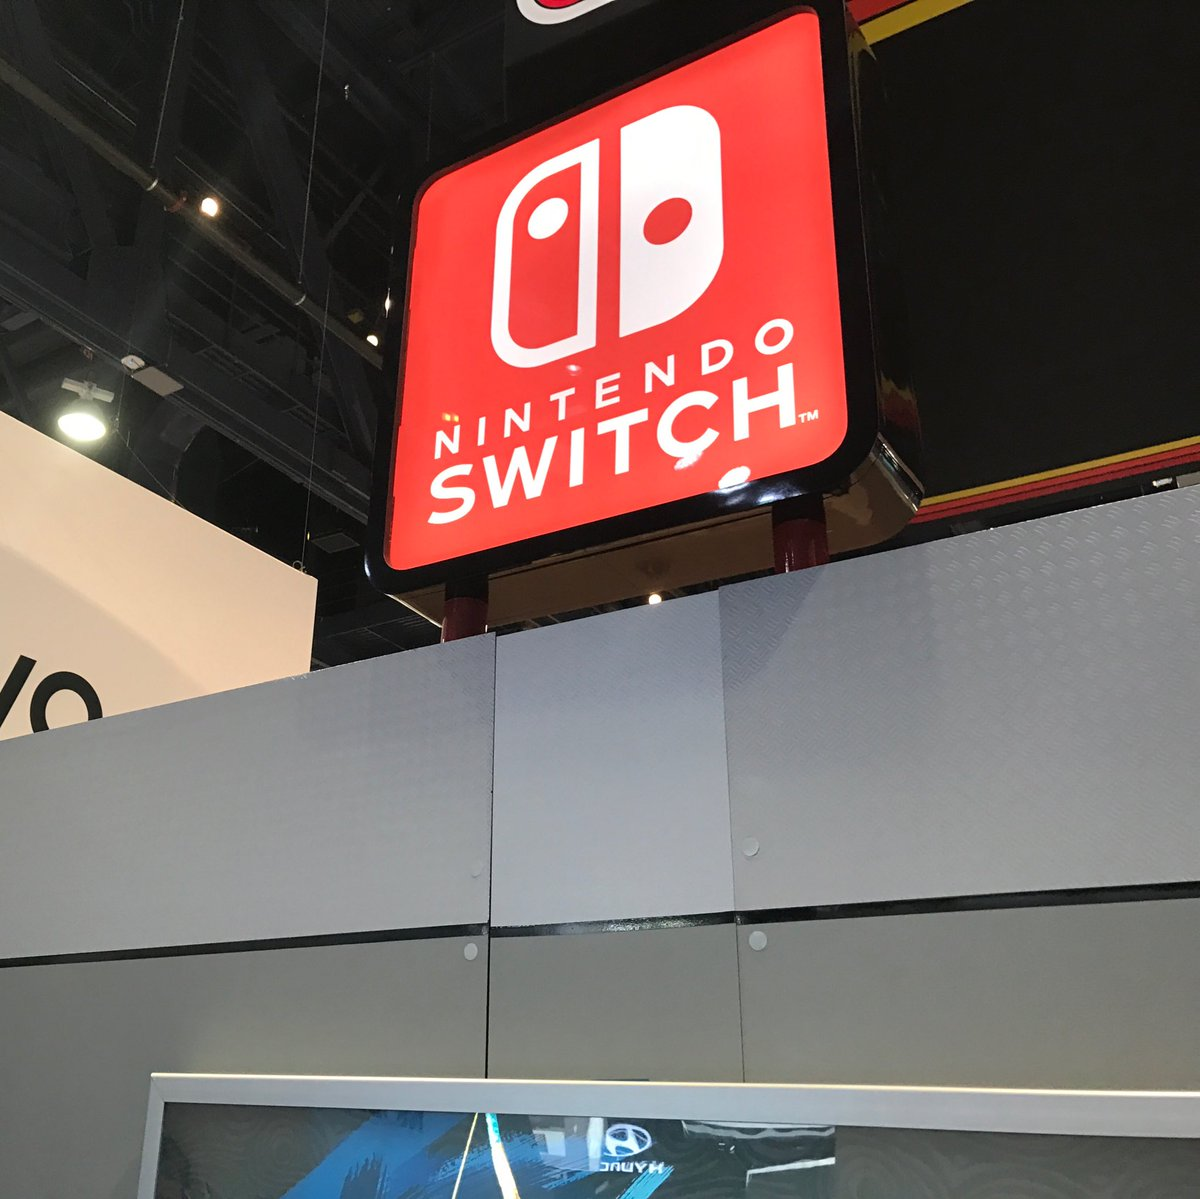 Actually, seen at #CES2017... #Nintendo #NintendoSwitch https://t.co/3Oc21zmI13